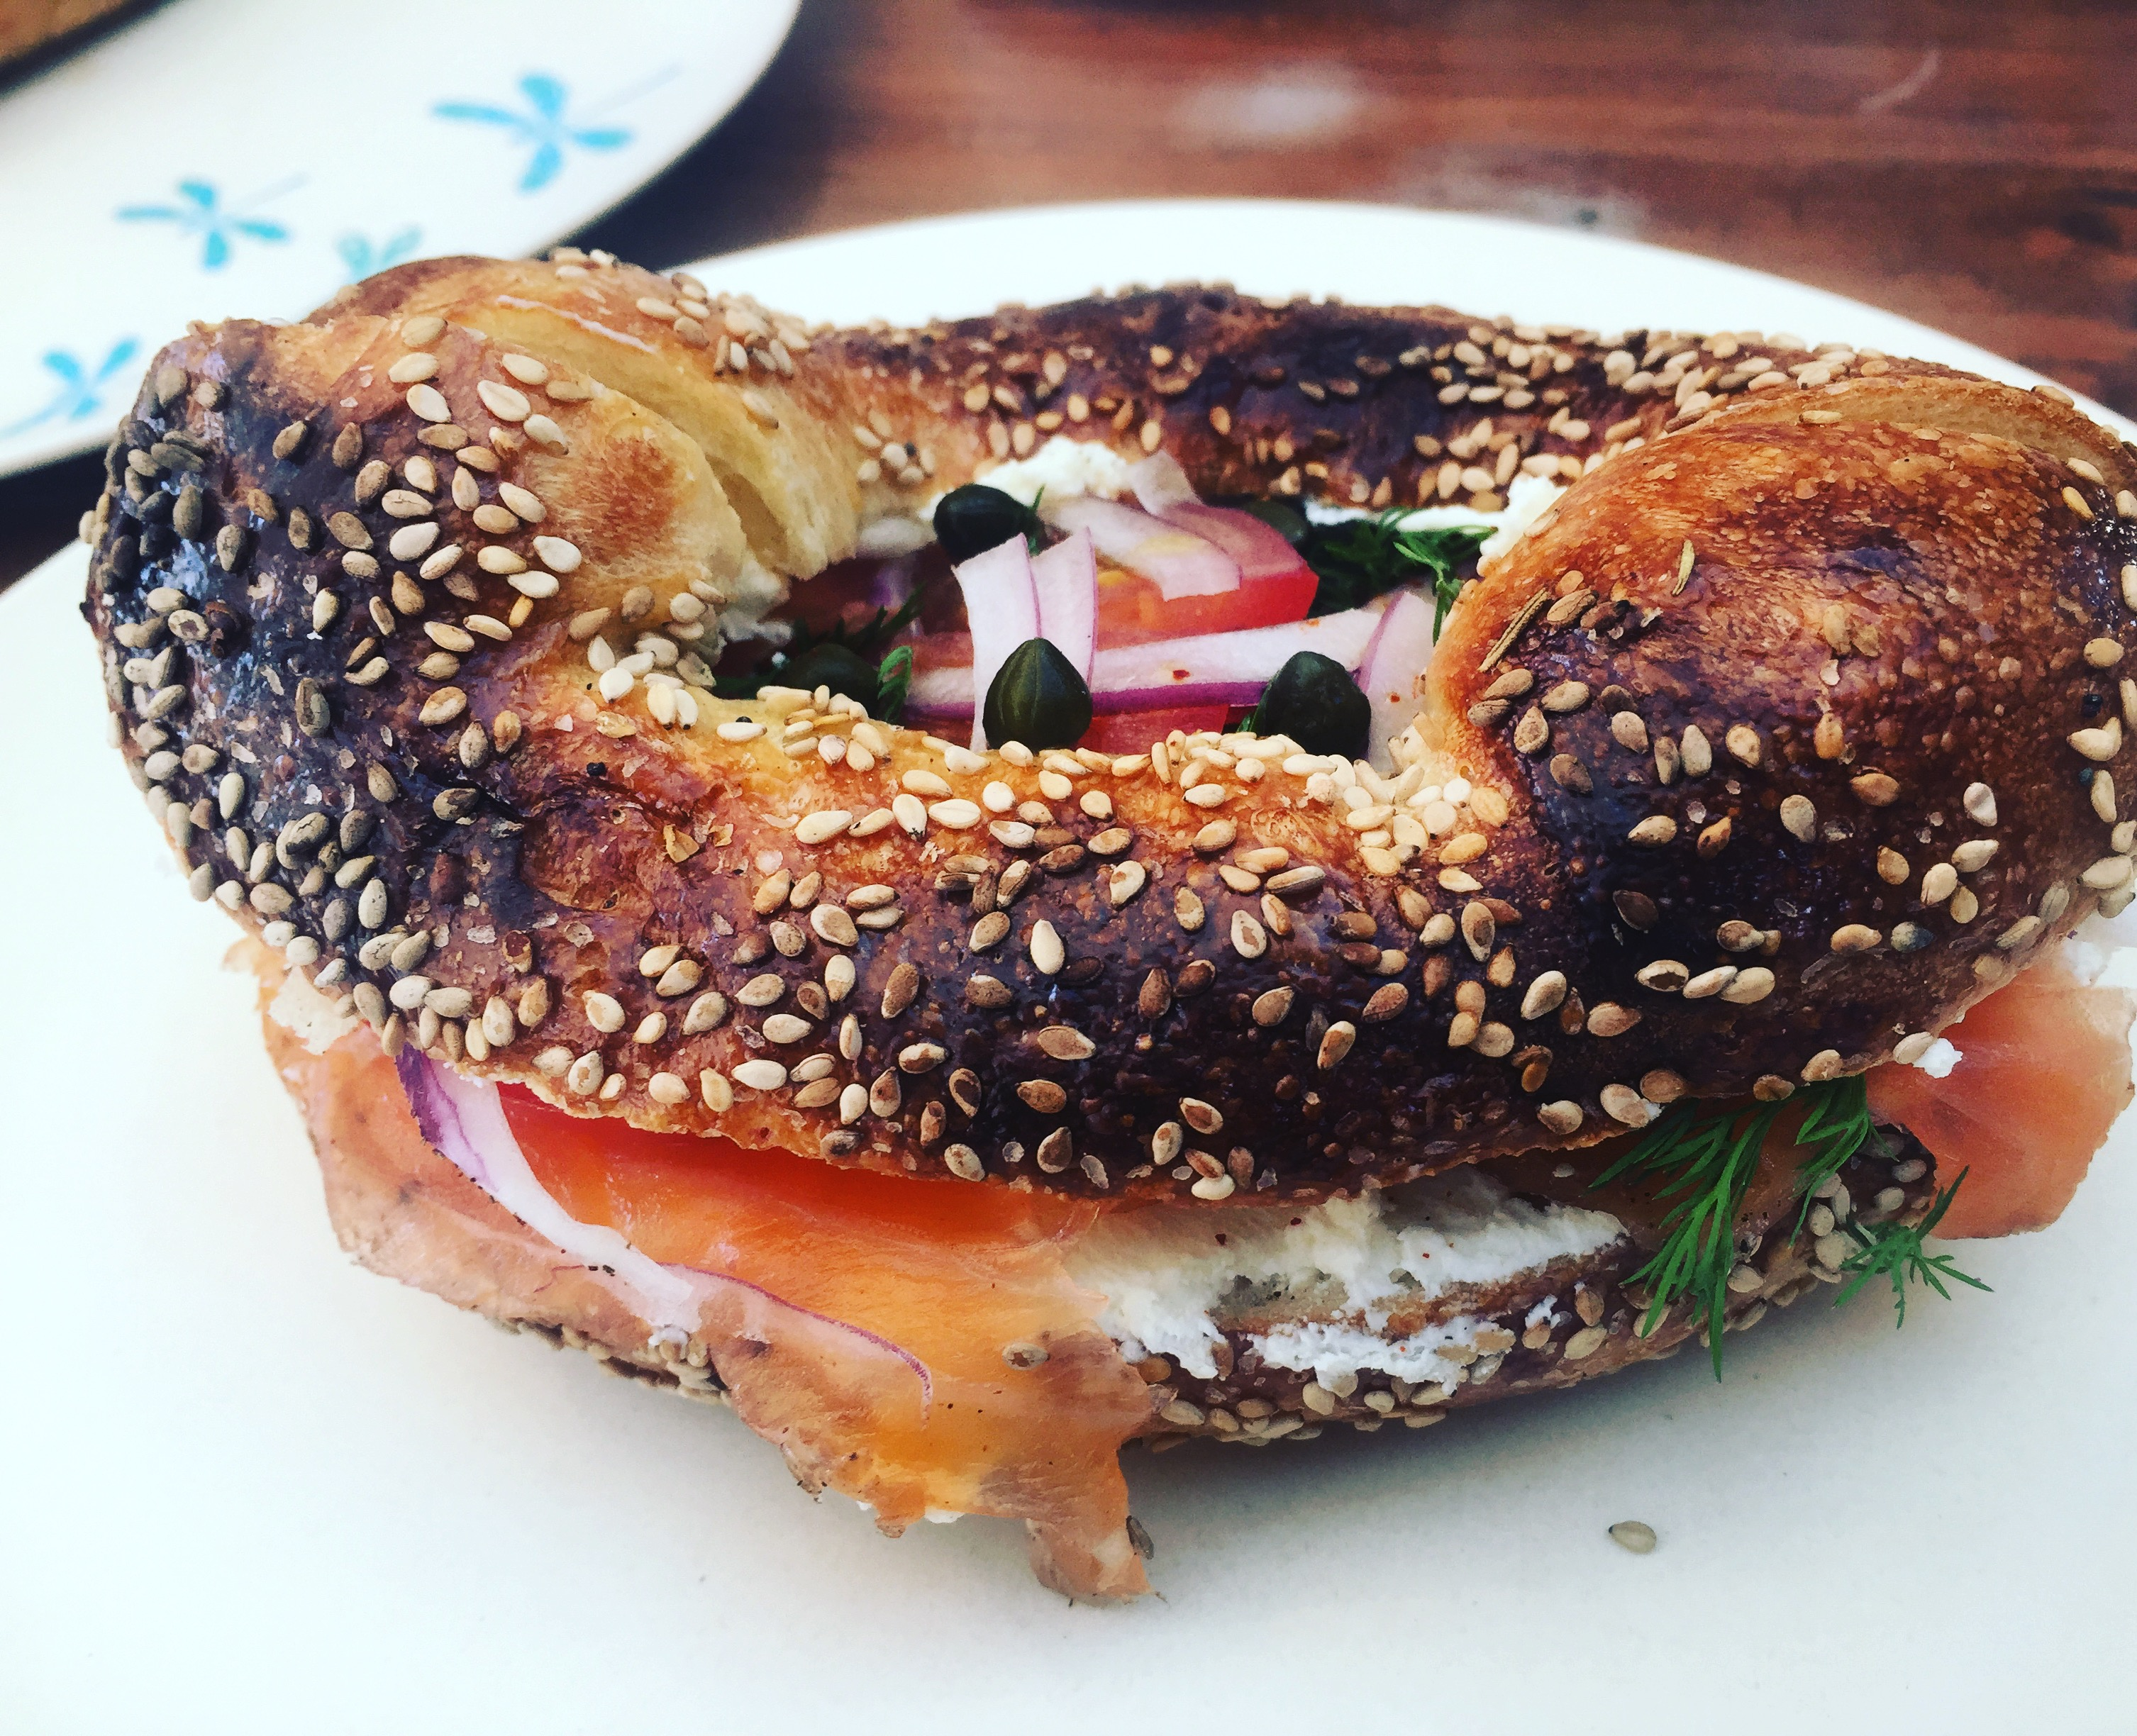 Former Portland restaurateur opens new Montreal-style bagel cafe